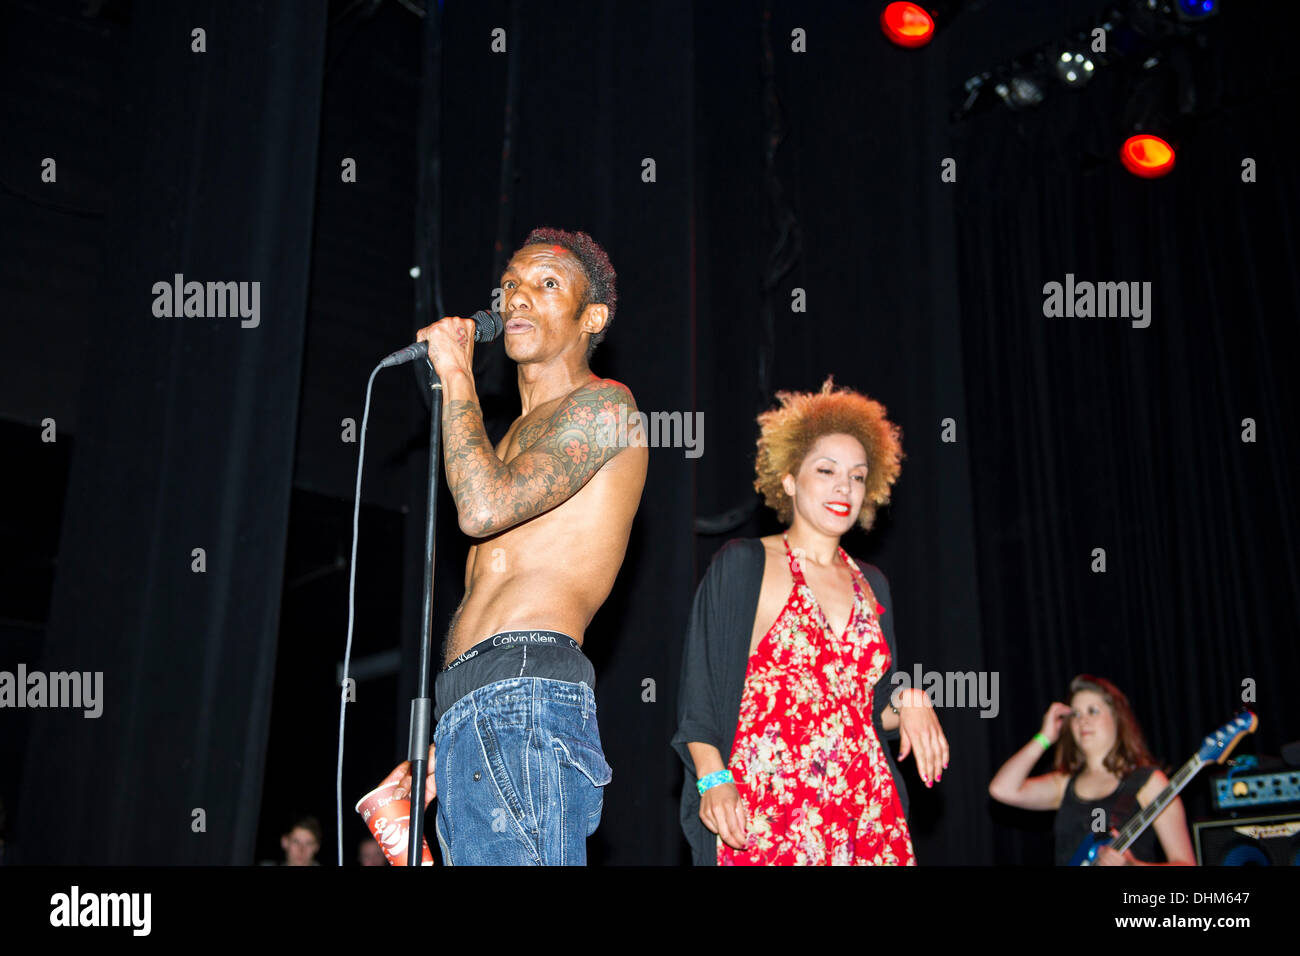 Tricky and Martina Topley Bird perform at the IndigO2  London, UK - 27.04.12 - Stock Image